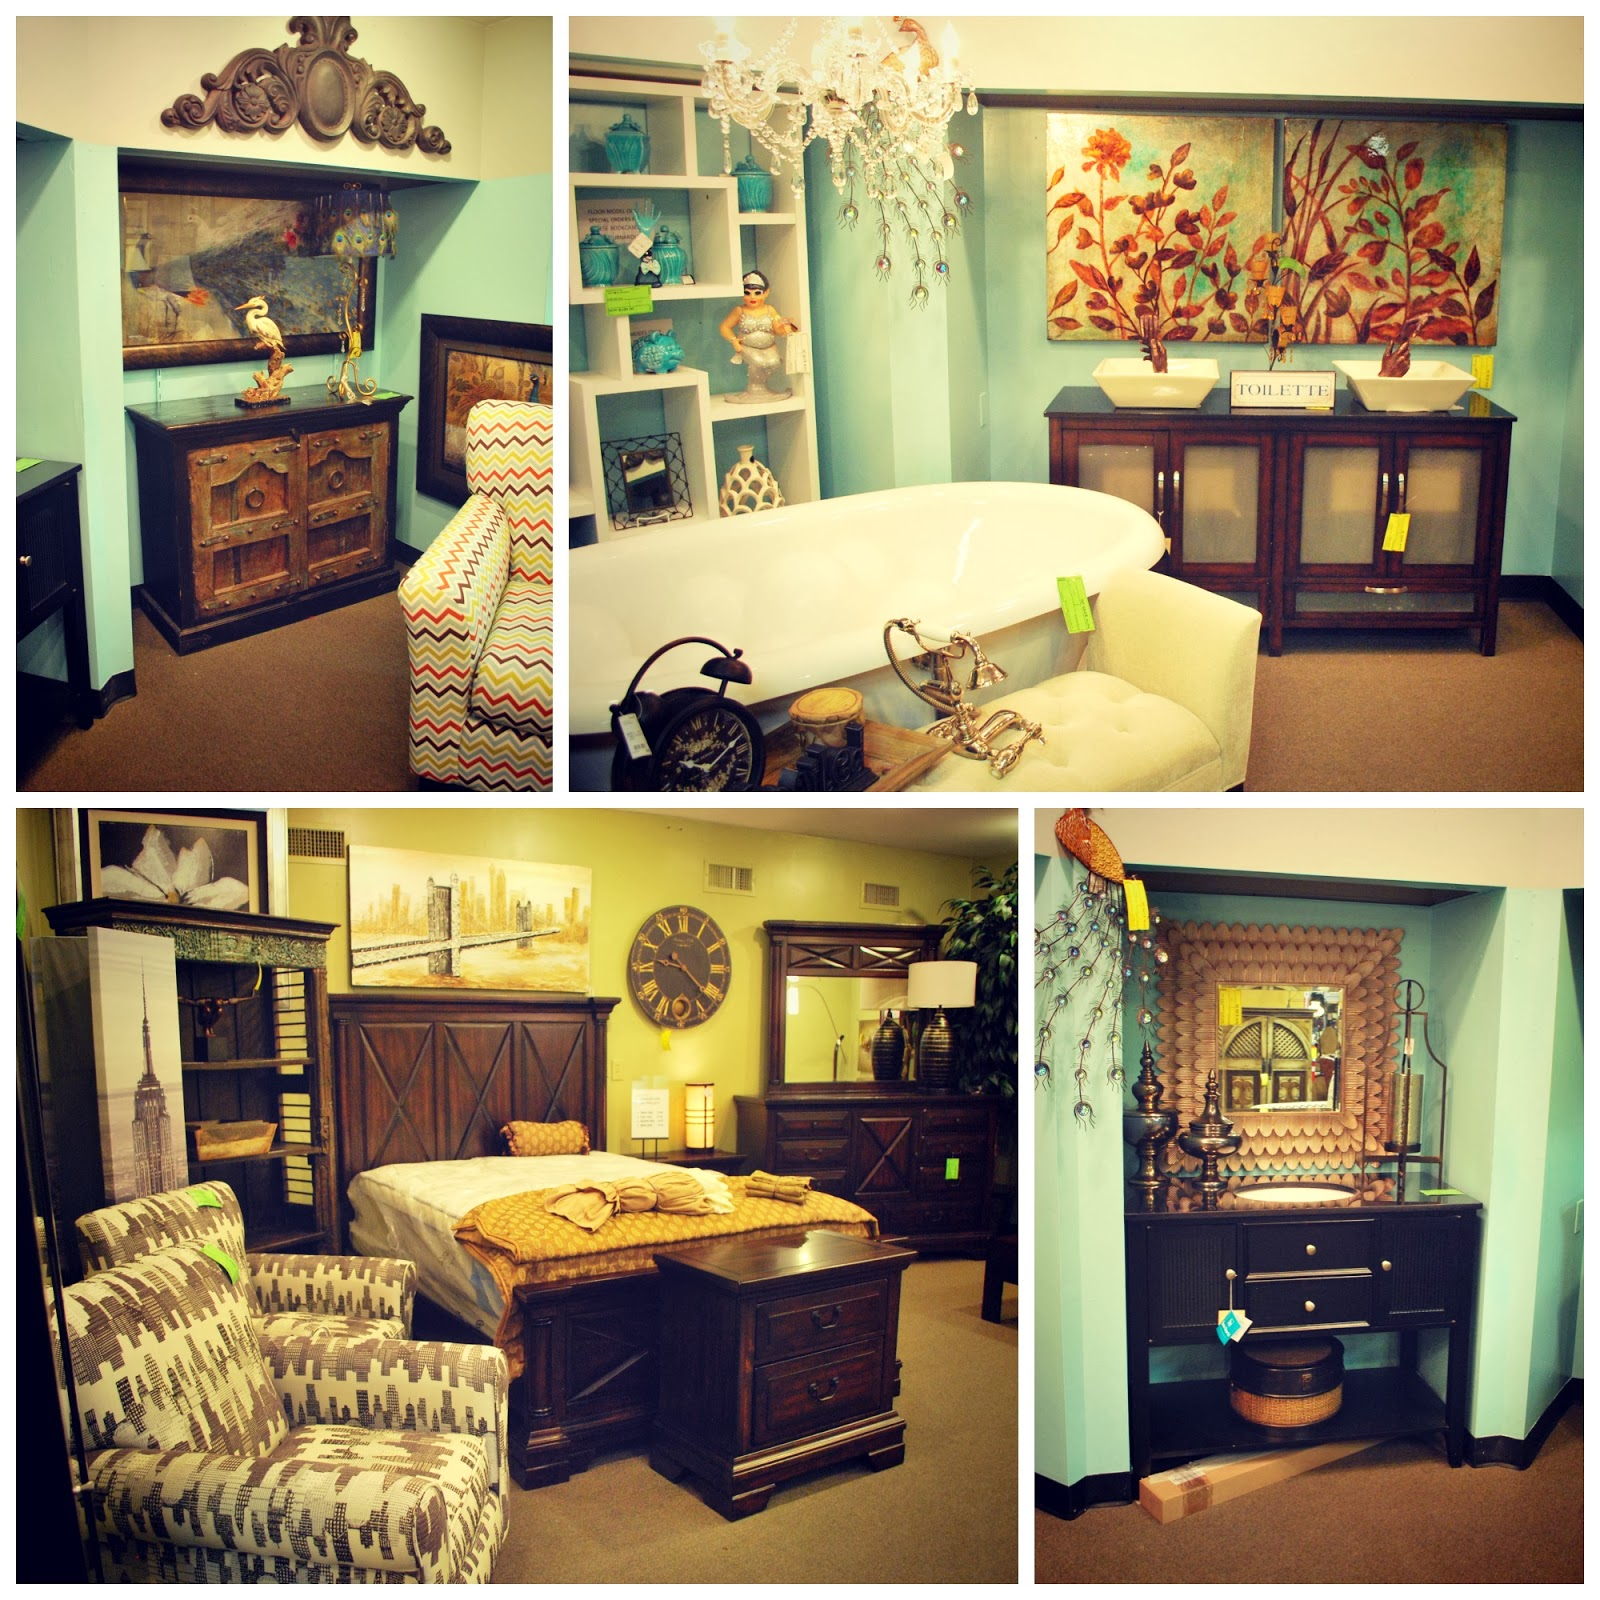 Home Furnishing Stores: Atlanta Consignment Stores: How To Sell Furniture And Home